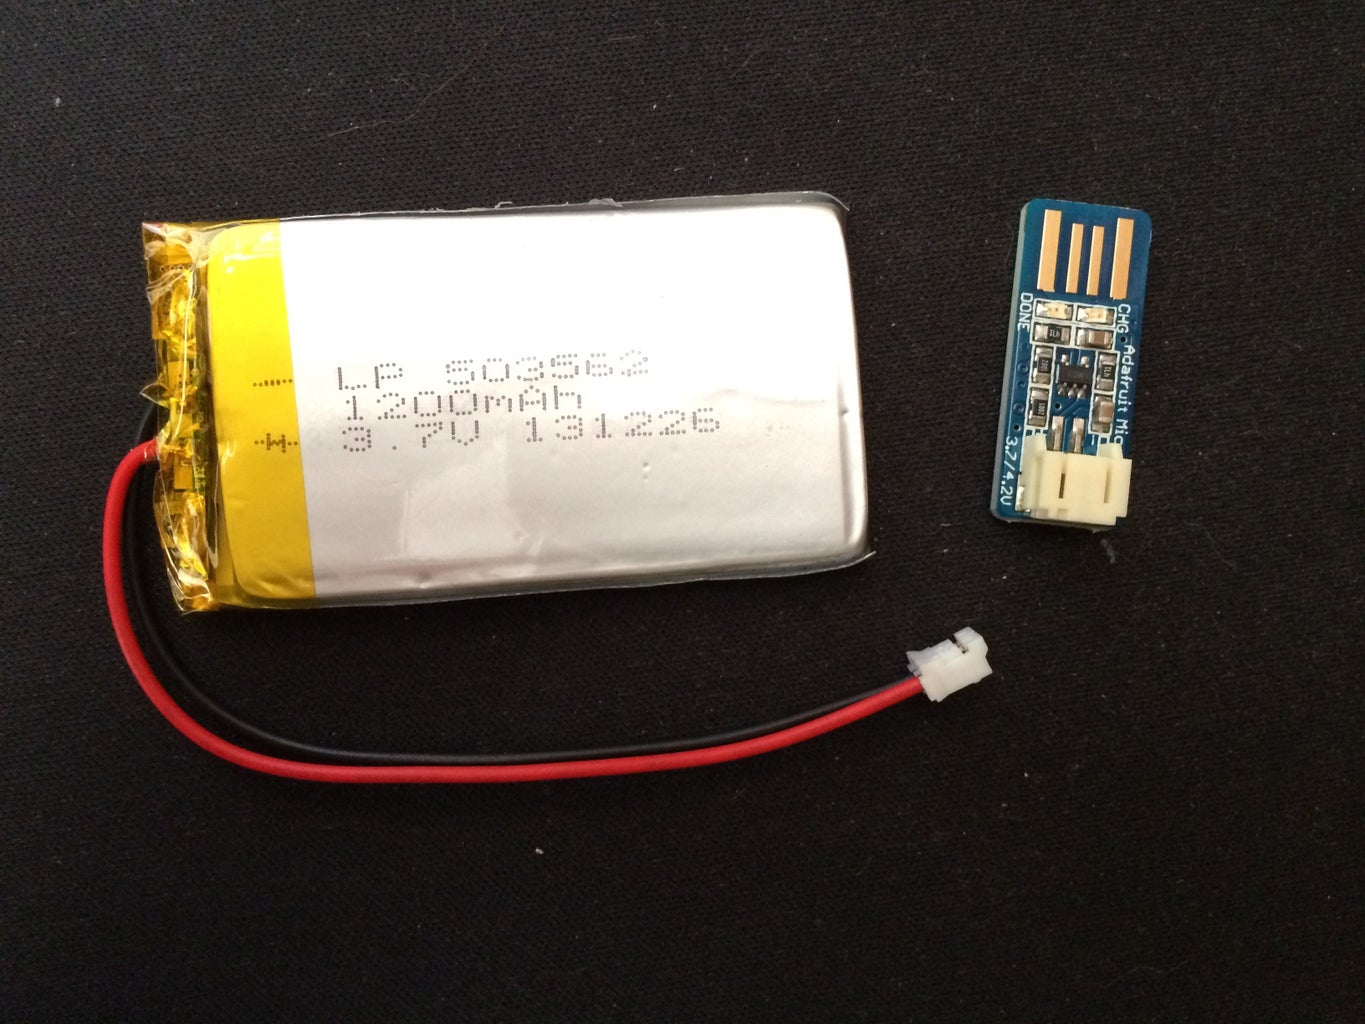 Charge the LiPo Battery